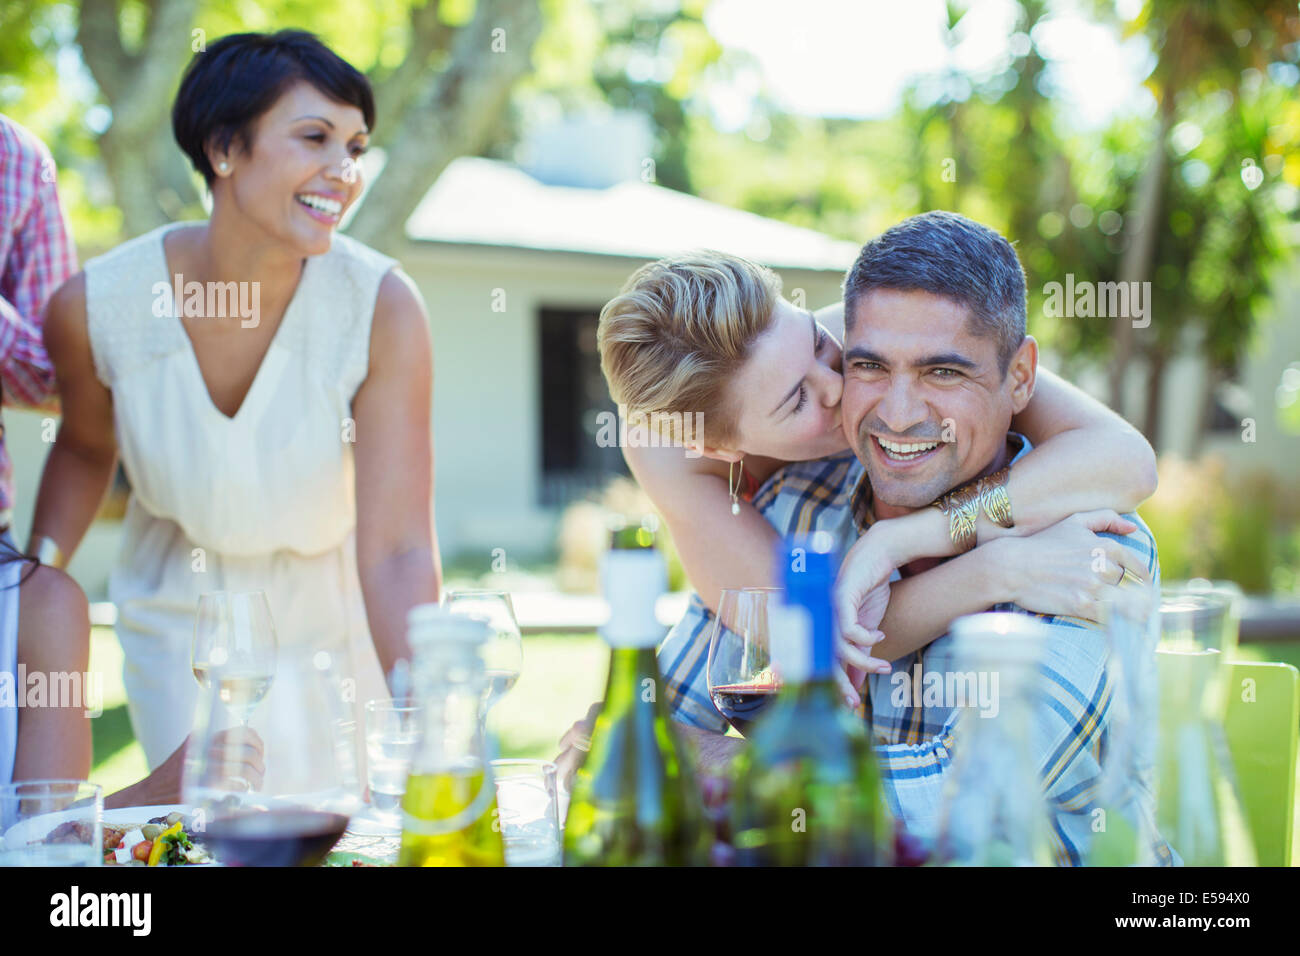 Couple kissing at table outdoors Banque D'Images